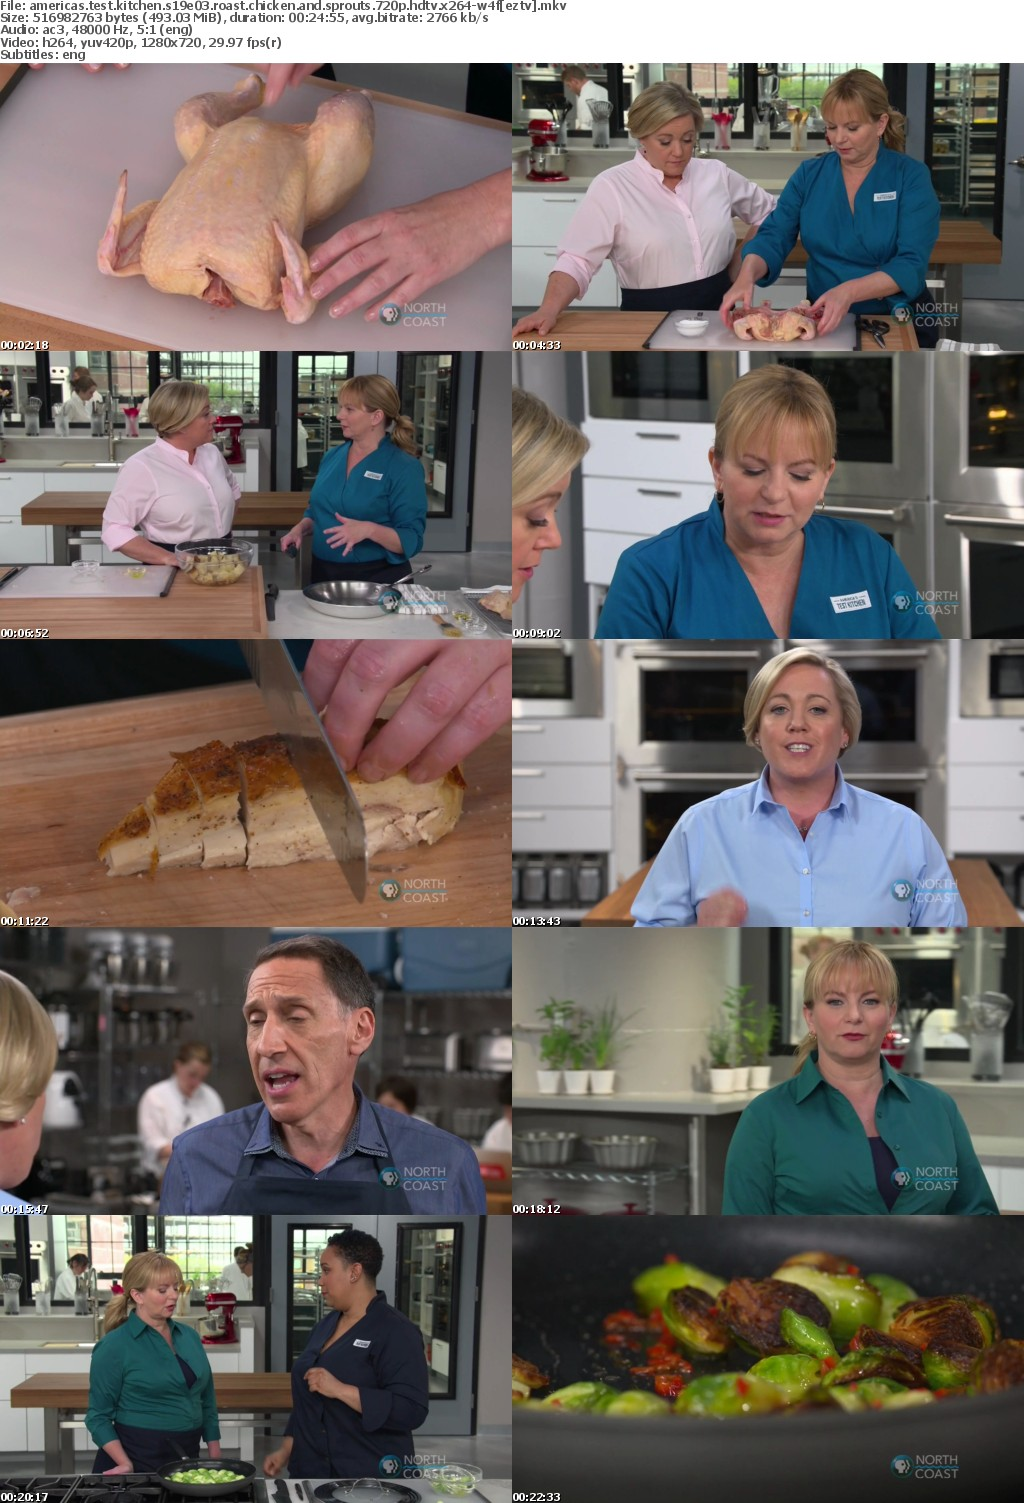 Americas Test Kitchen S19E03 Roast Chicken and Sprouts 720p HDTV x264-W4F